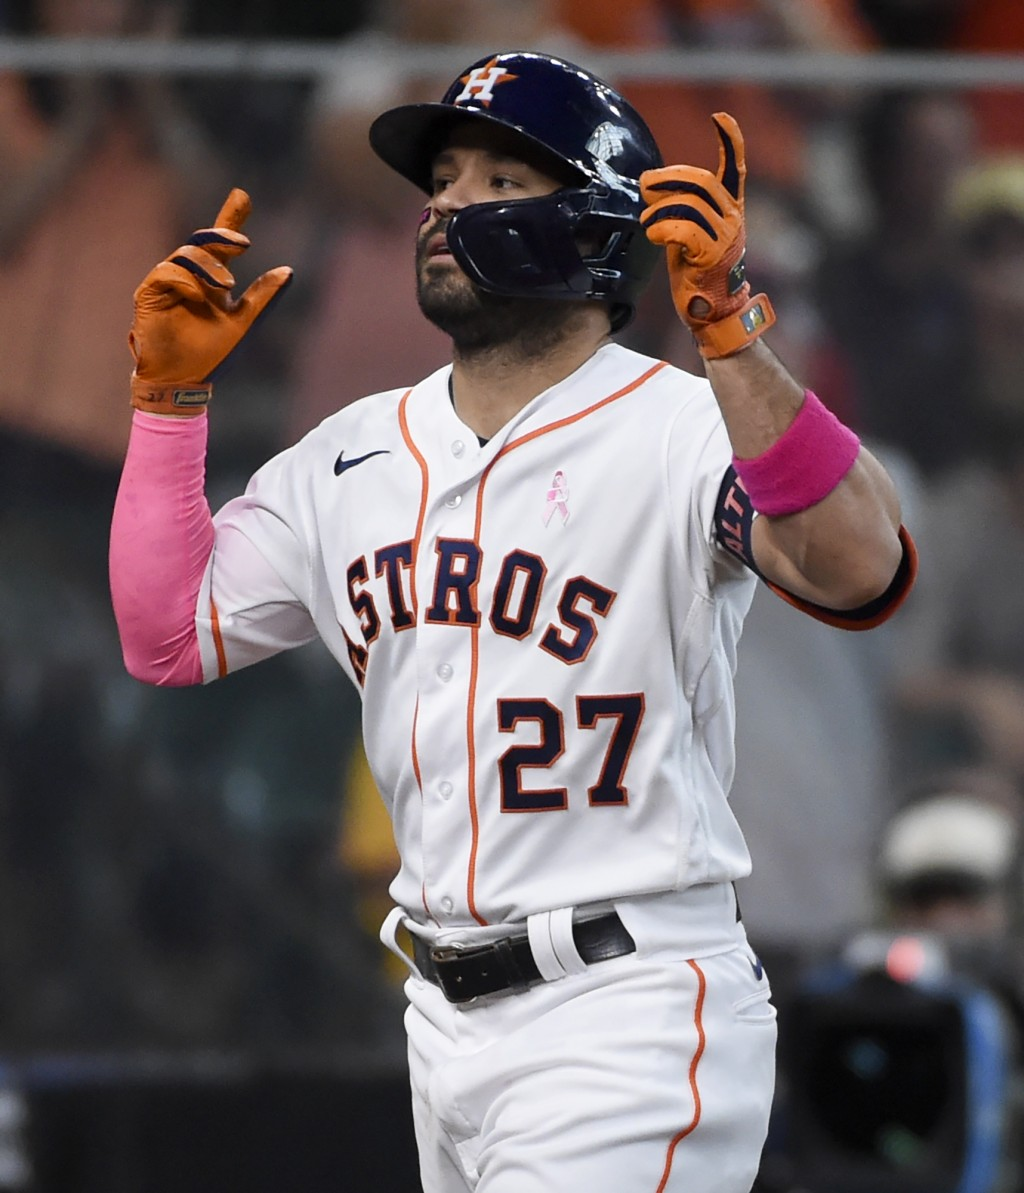 Houston Astros' Jose Altuve reacts after hitting a solo home run during the fourth inning of a baseball game against the Toronto Blue Jays, Sunday, Ma...